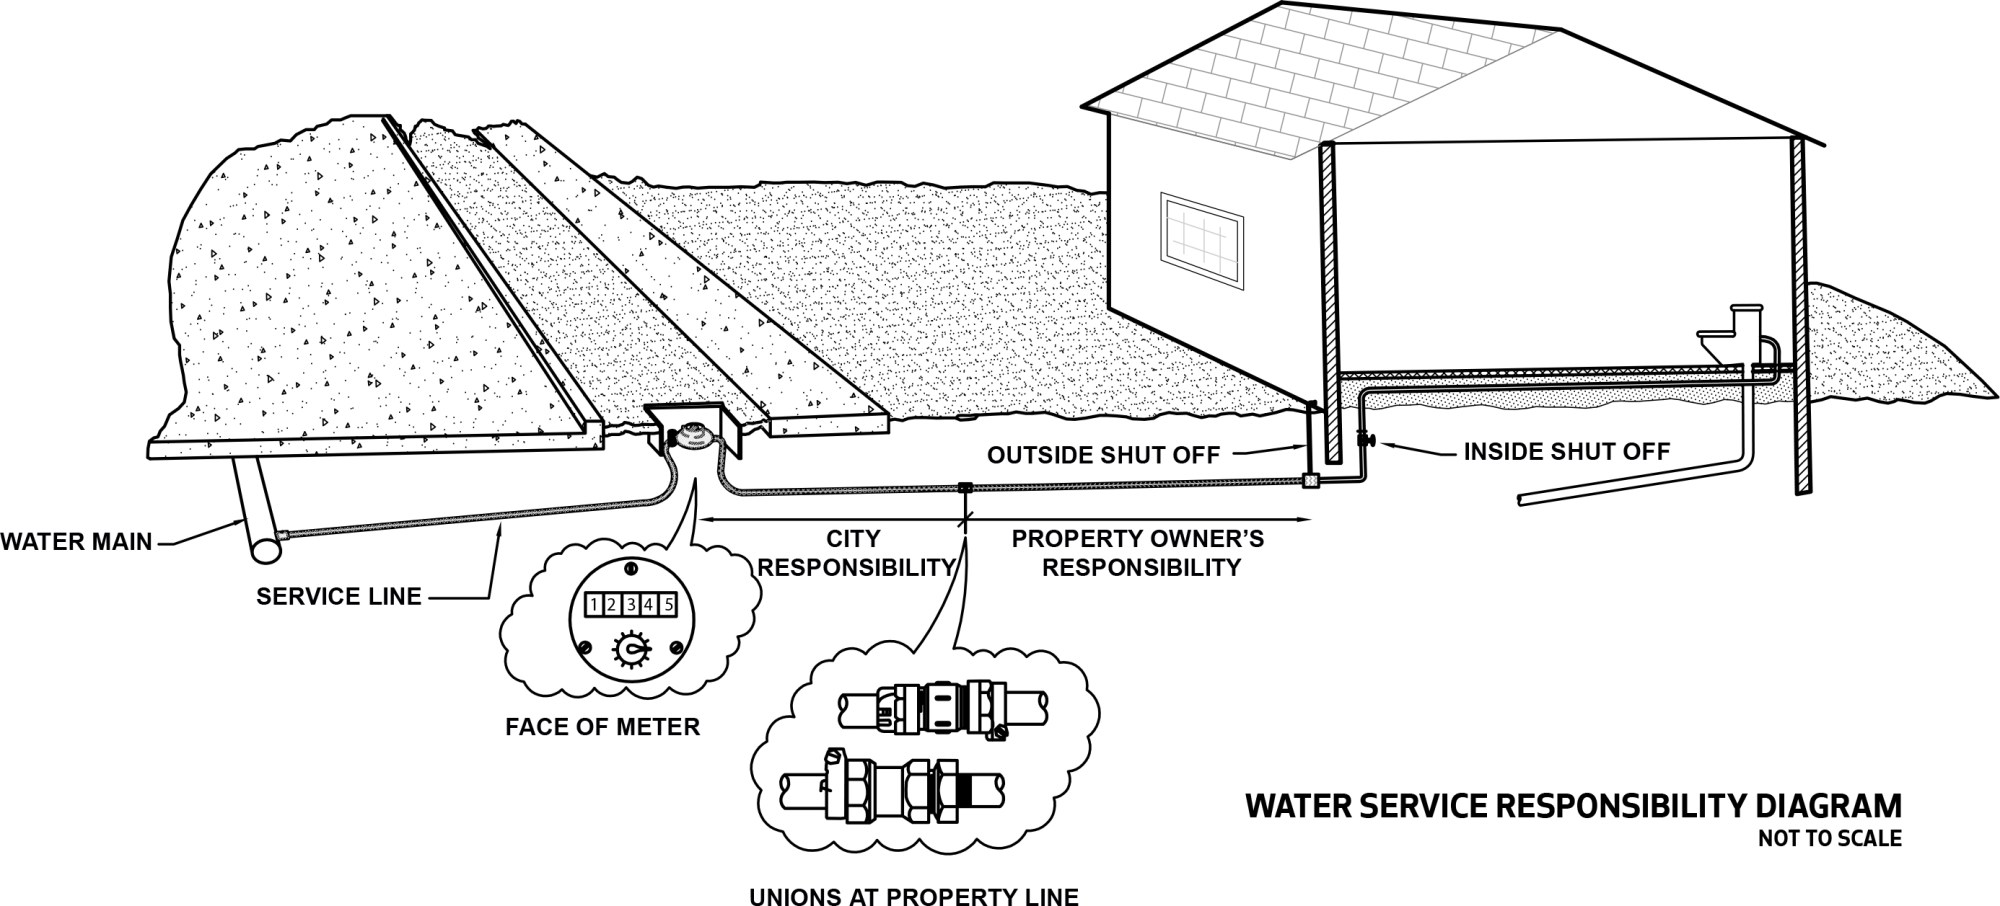 hight resolution of water service responsibility diagram showing the city responsibility of the water line ending and property